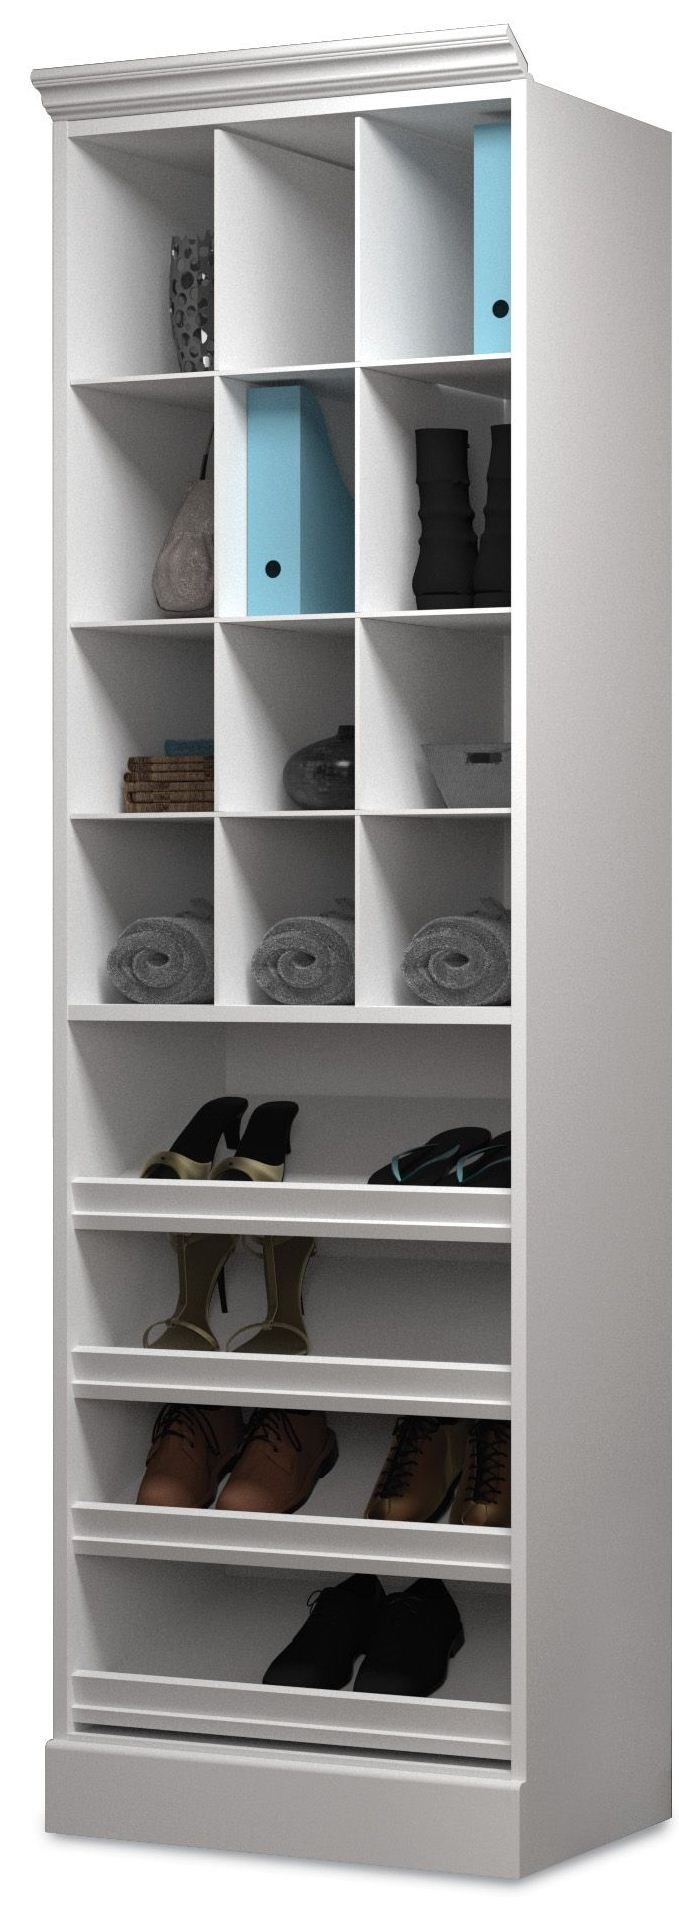 Versatile White 25quot Cubby Storage Unit From Bestar 40164